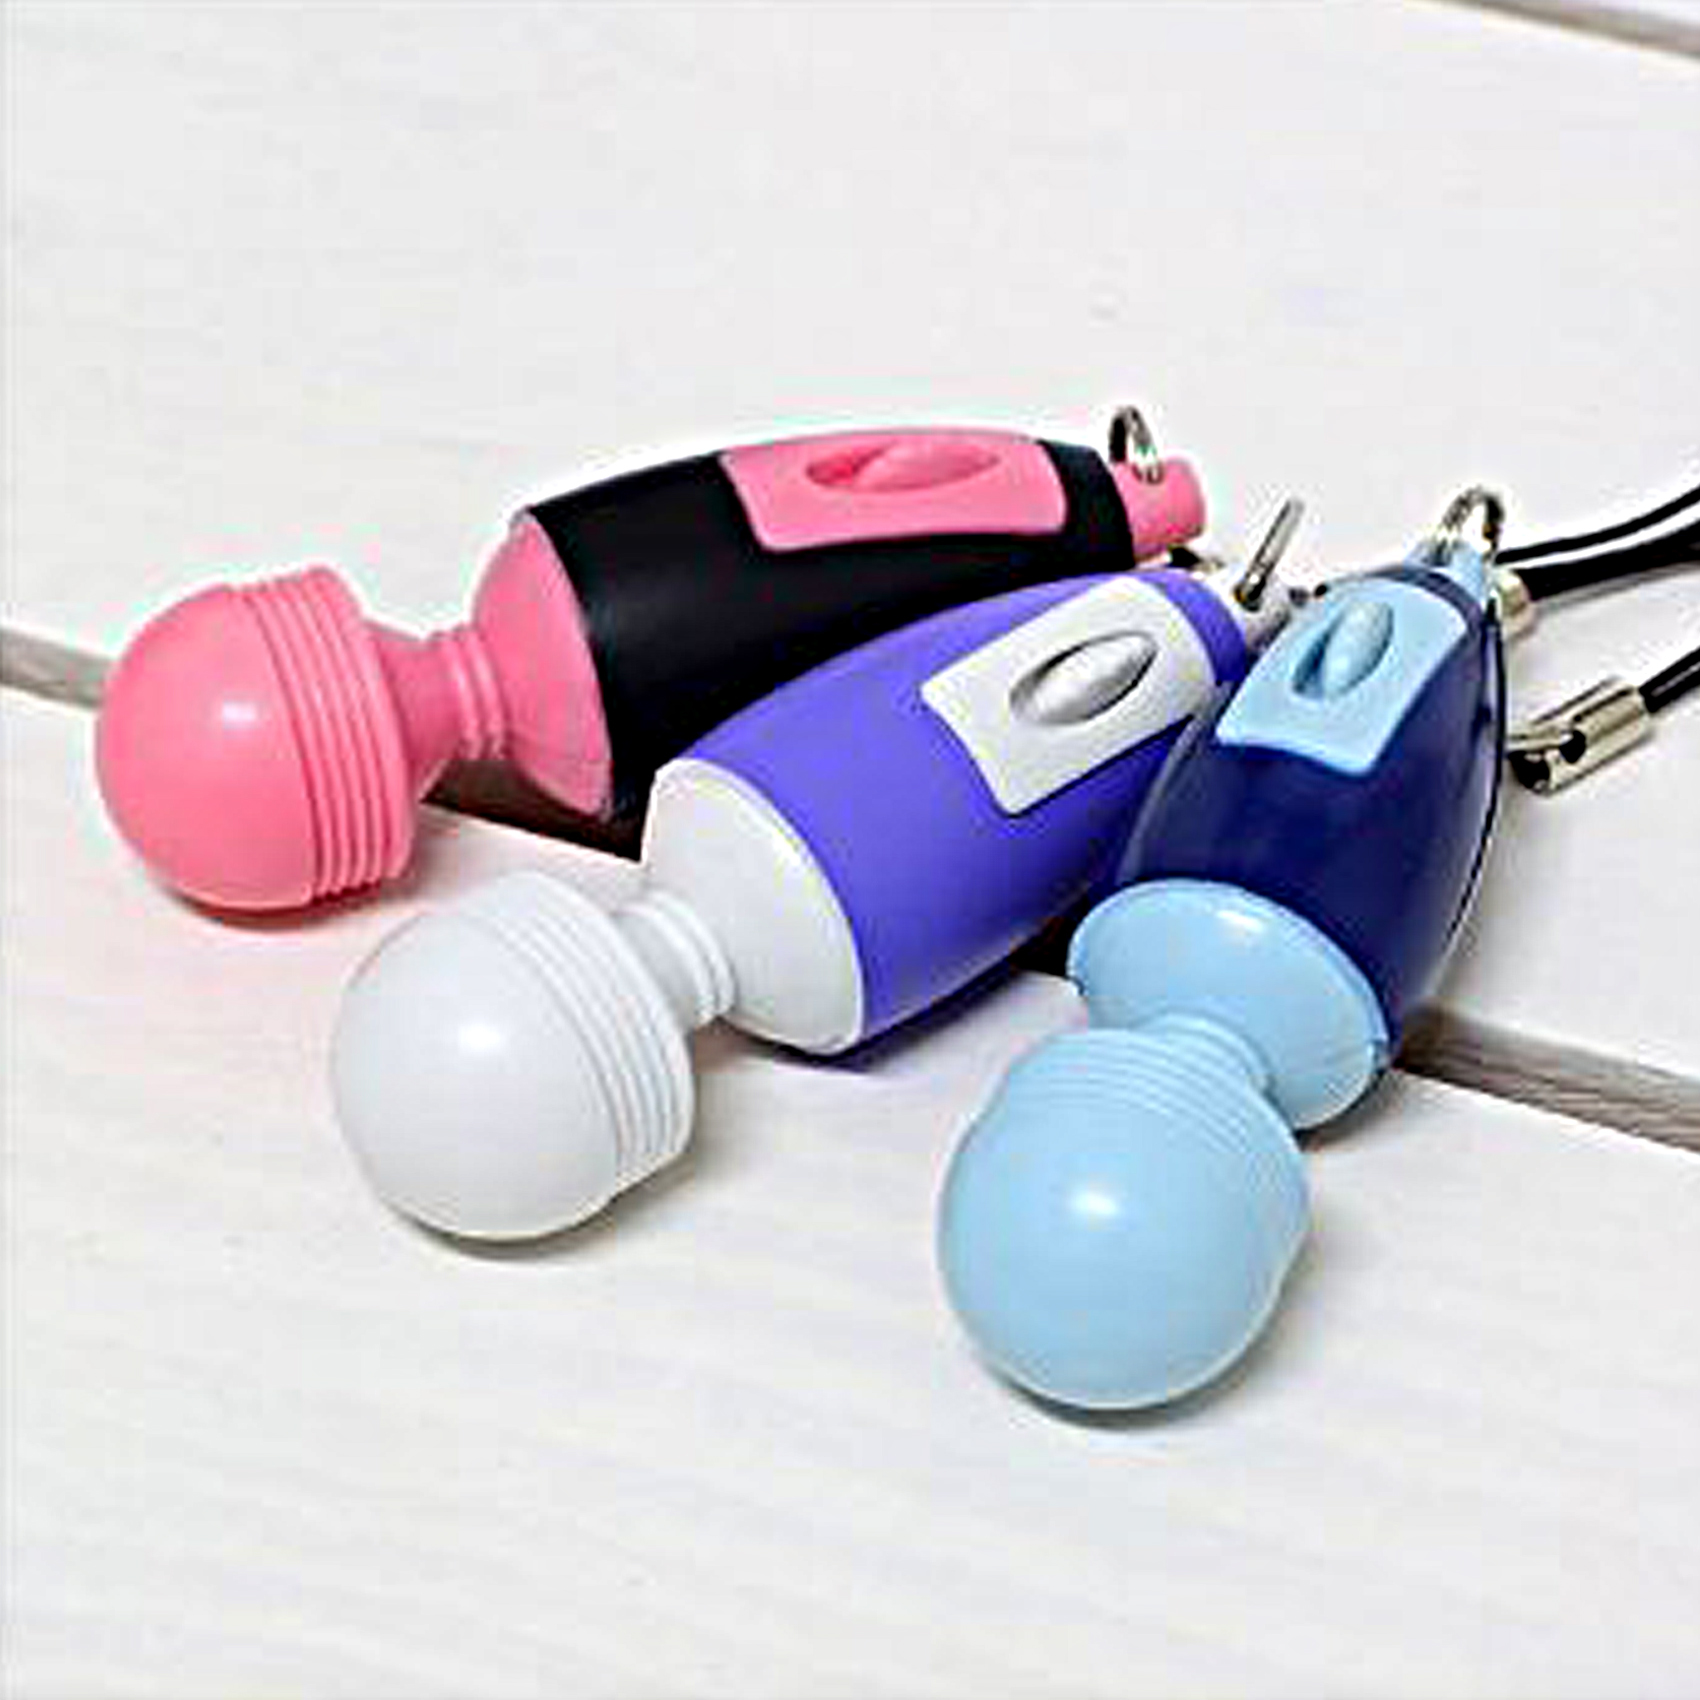 Mini Electric Massage Stick - Pink